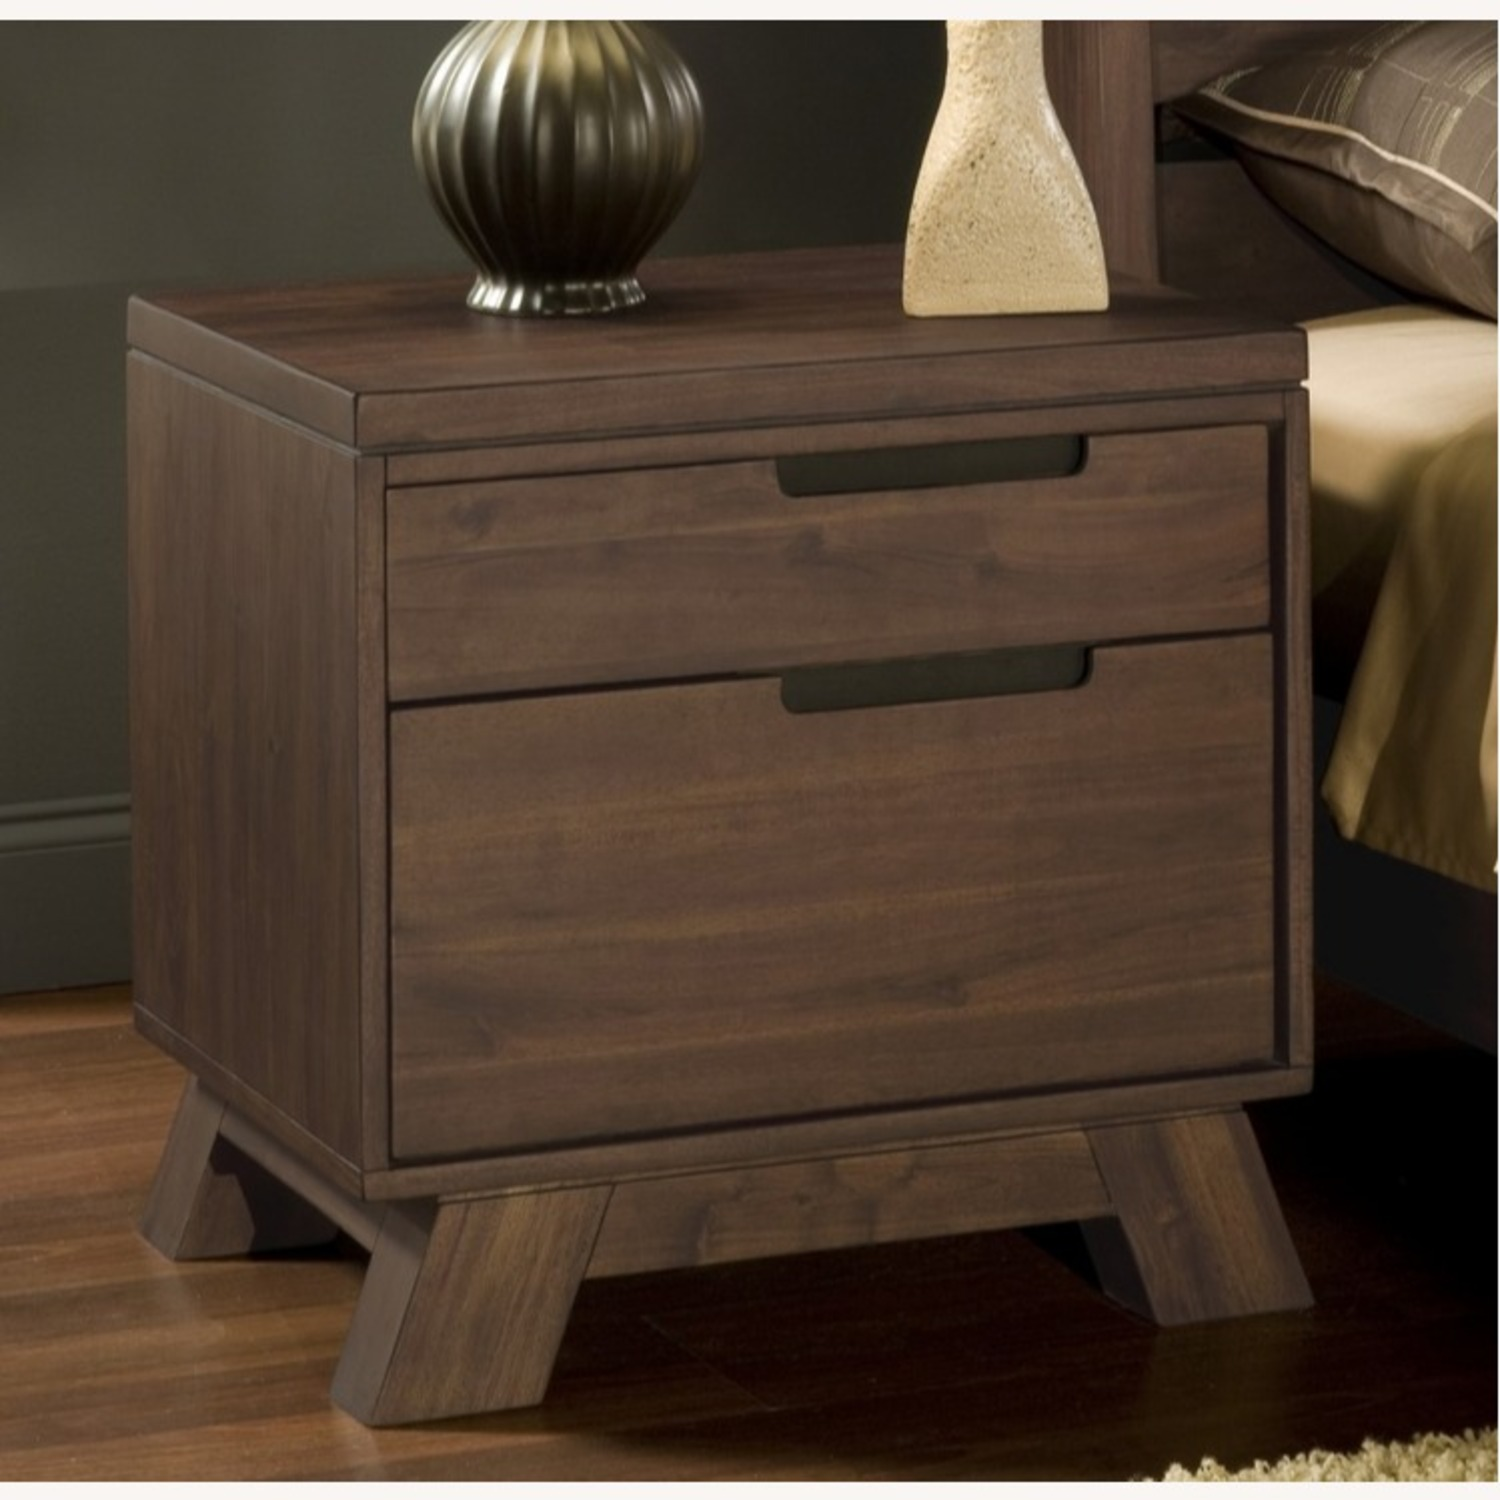 Modus Furniture Solid Wood 2 Drawer Nightstand - image-2